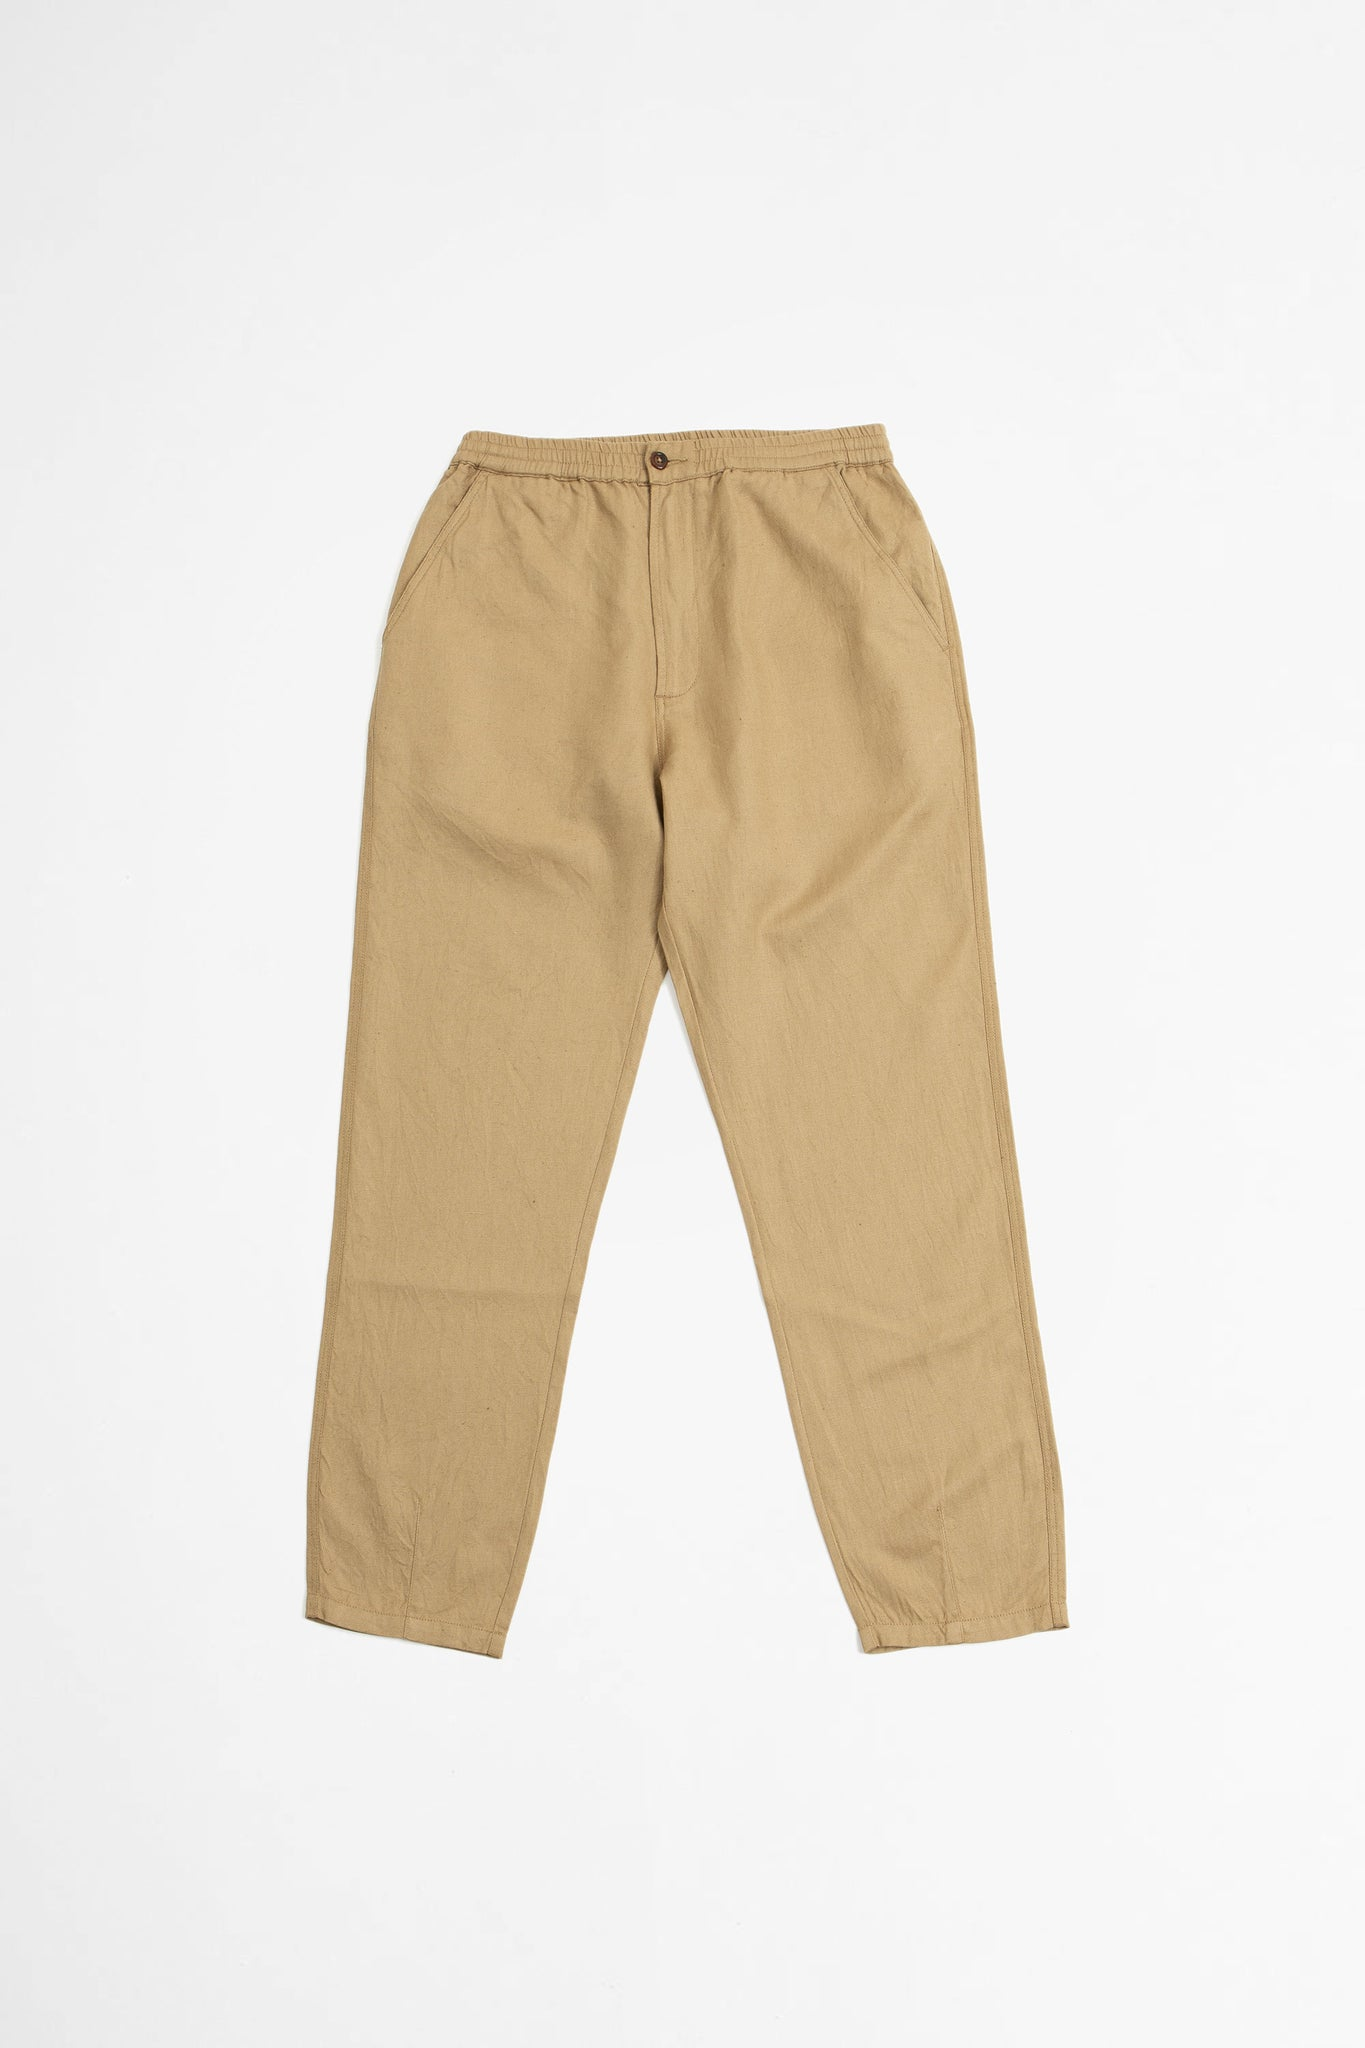 Track trouser linen cotton suiting sand